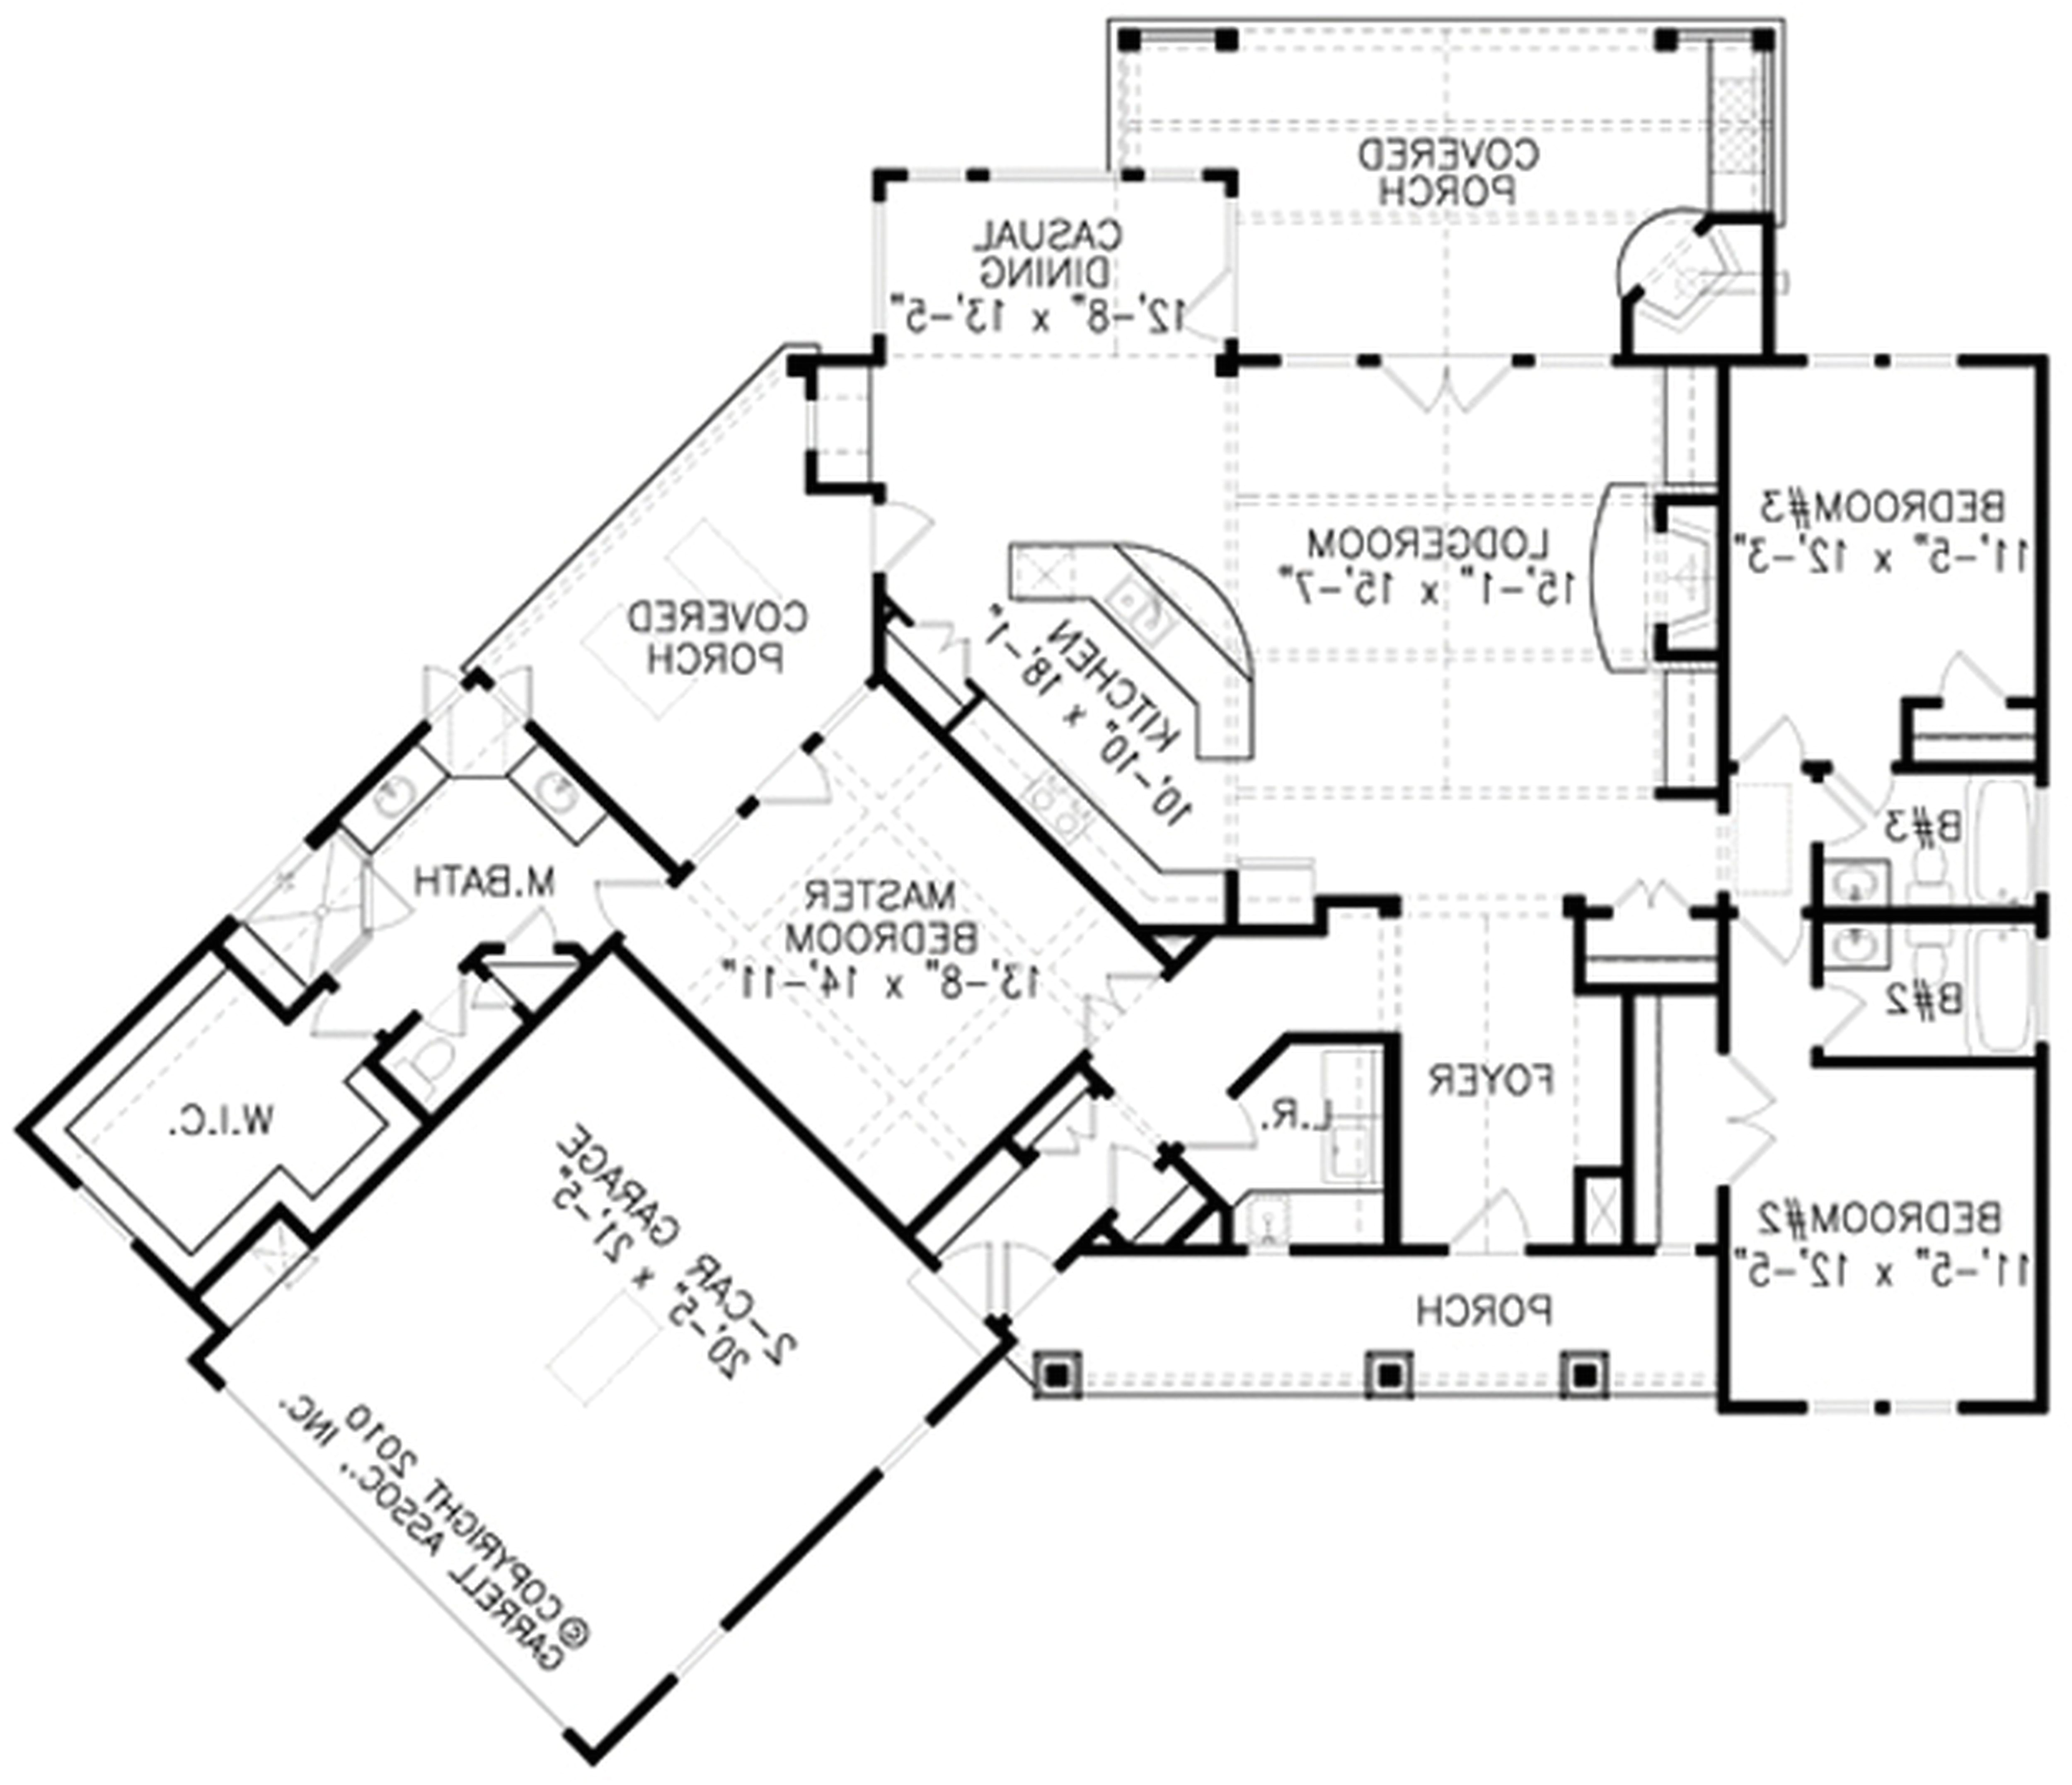 free online house plans sample houseplan houses demo freeware plan shop complete new floorplan builder my professional 2d